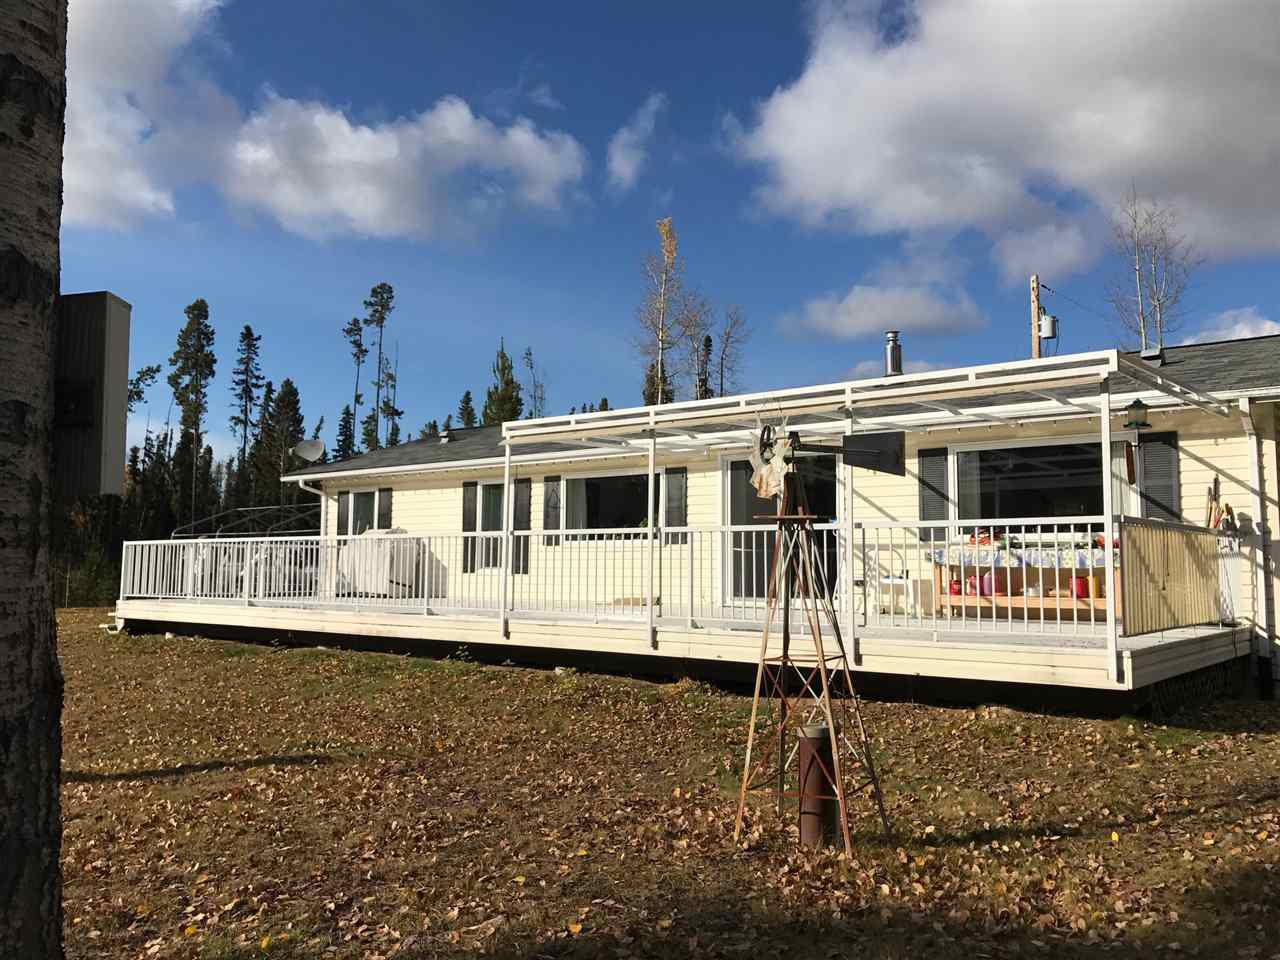 """Main Photo: 12765 MILES Road in Prince George: Beaverley Manufactured Home for sale in """"HOMESTEAD ACRES"""" (PG Rural West (Zone 77))  : MLS®# R2217238"""